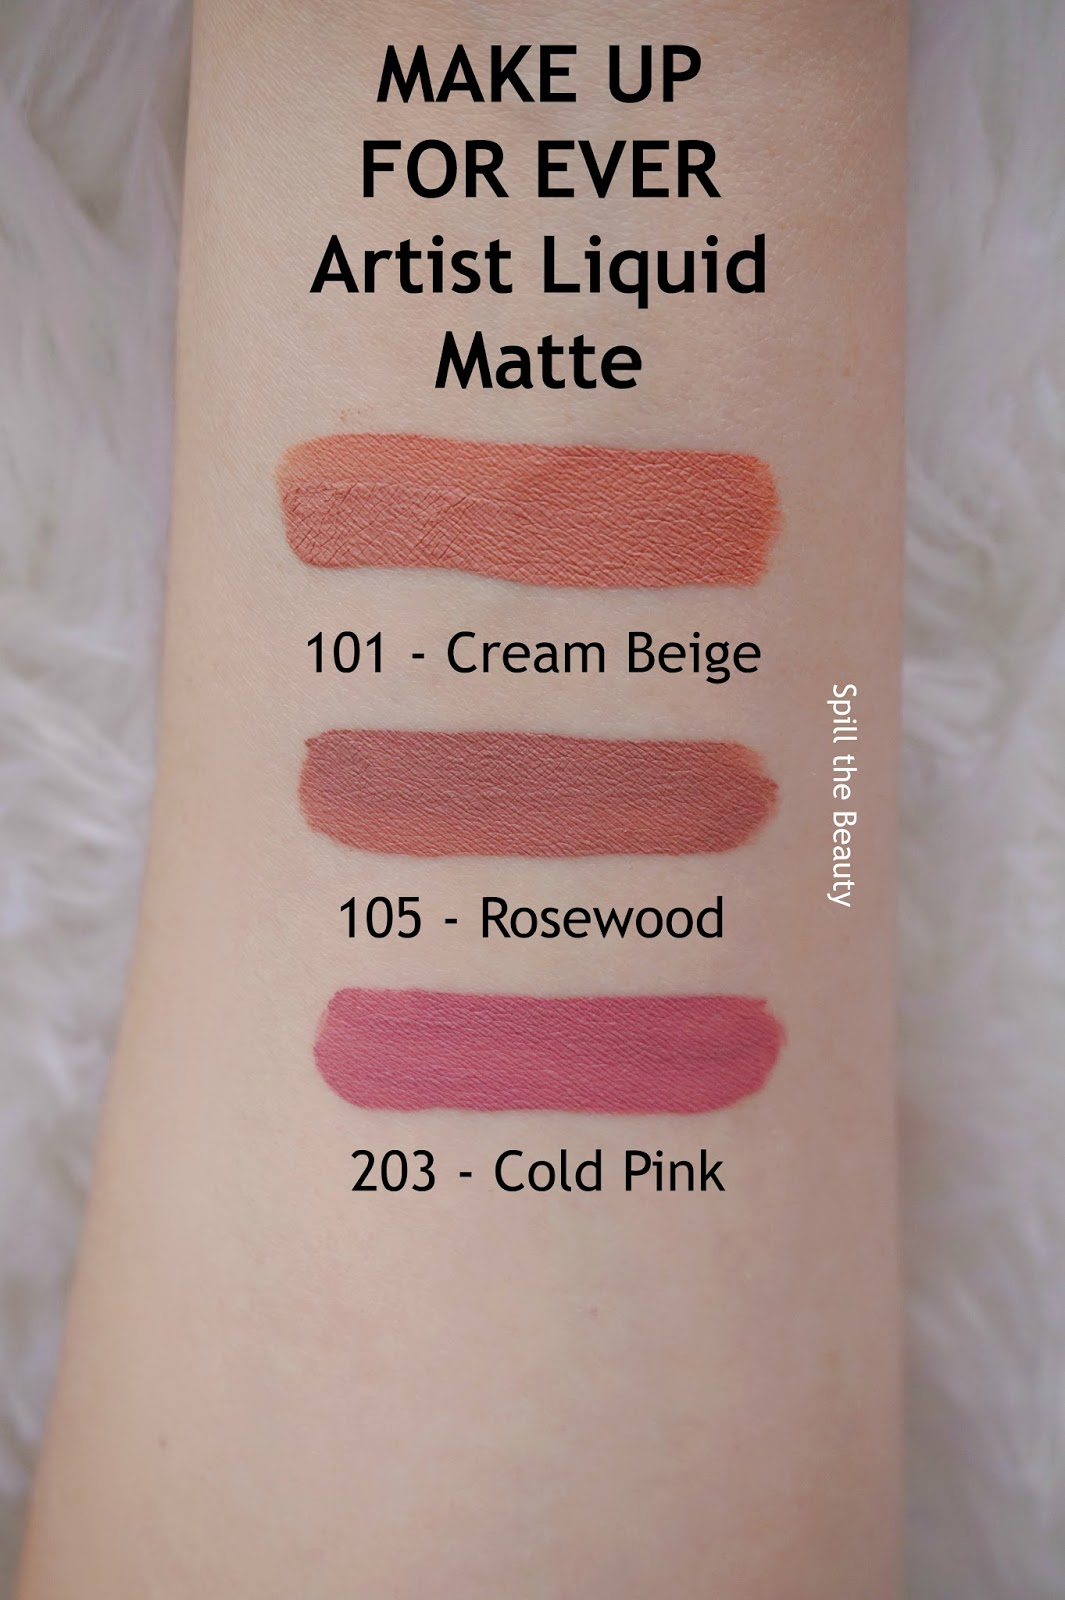 MAKE UP FOR EVER artist liquid matte lipstick 101 cream beige 105 rosewood 203 cool pink review swatches